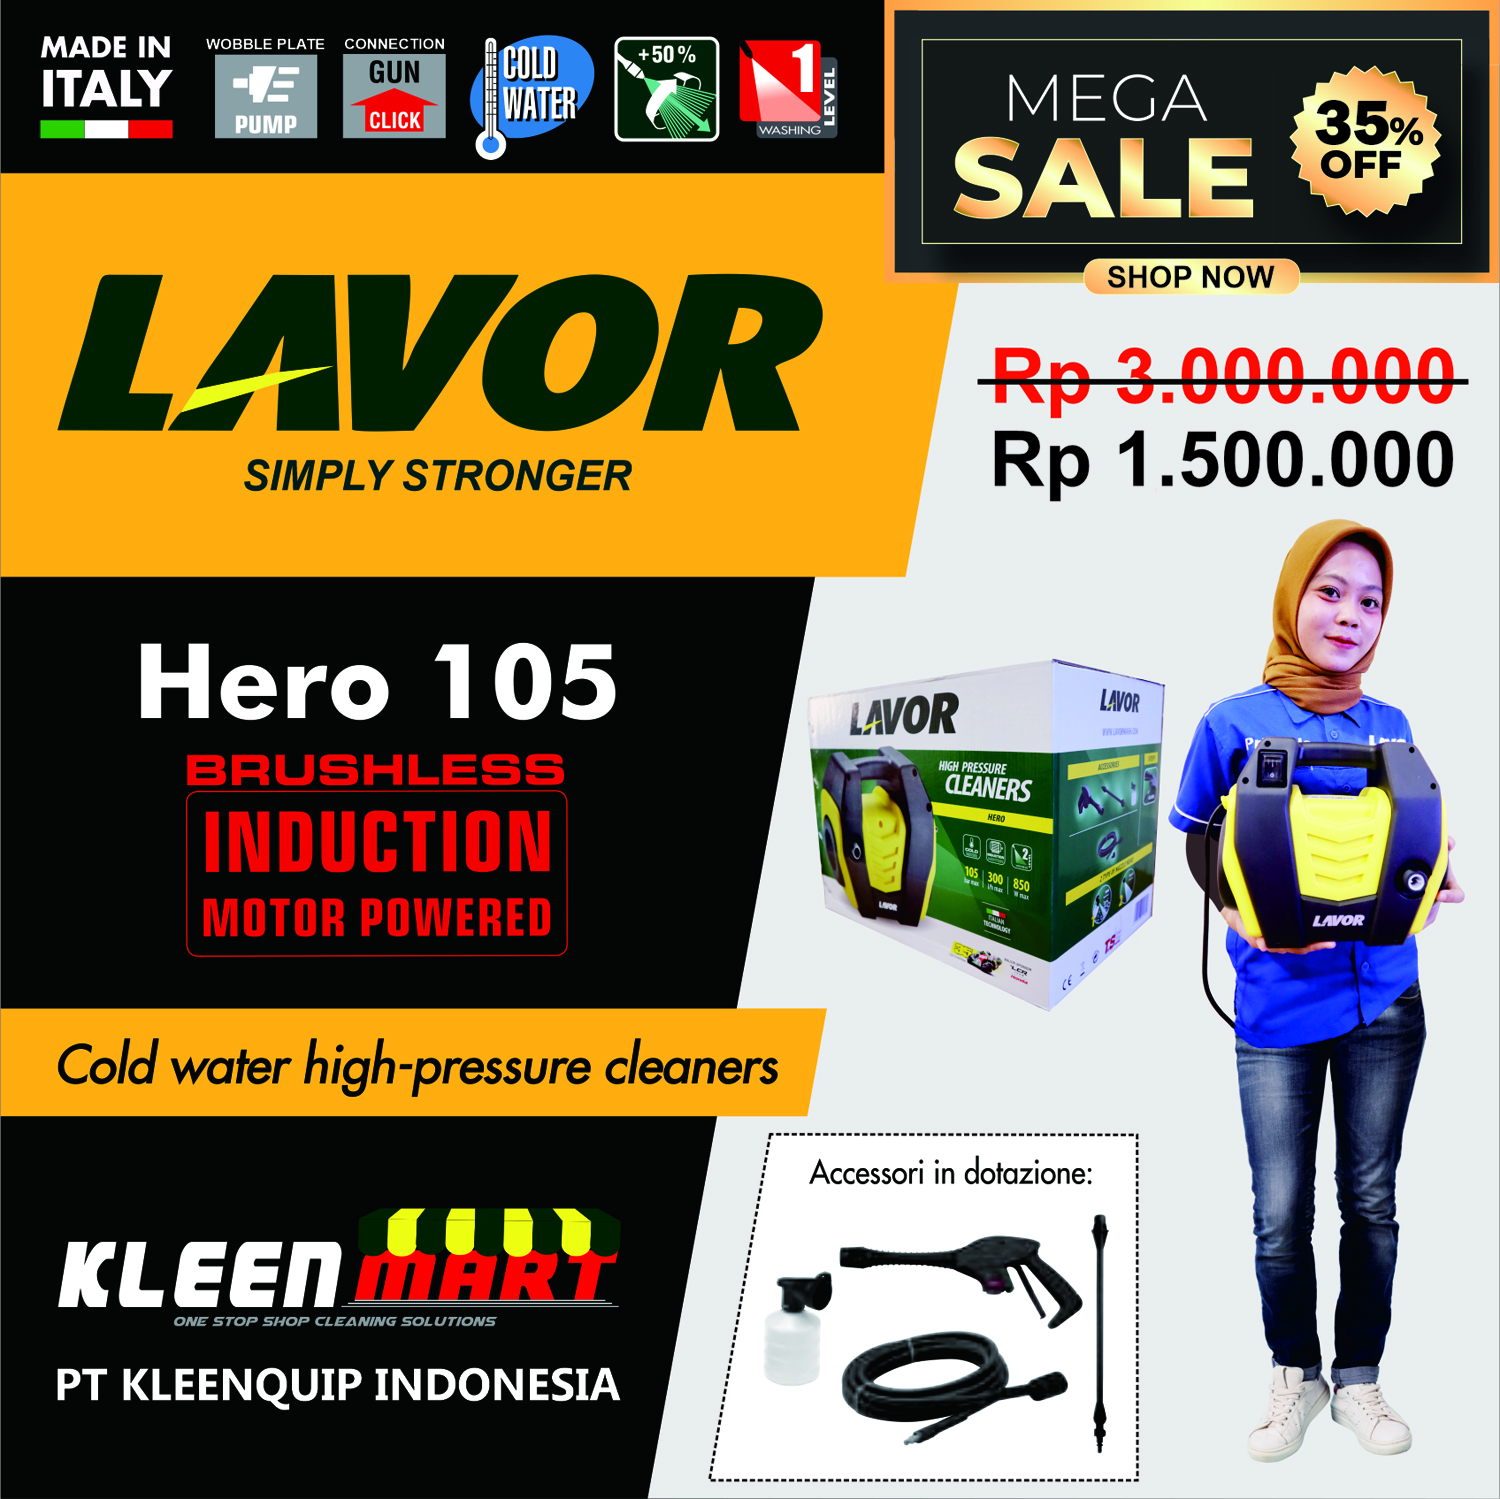 PROMO HIGH PRESSURE CLEANER HERO 105 - HIGH PRESSURE CLEANER LAVOR MADE IN ITALY